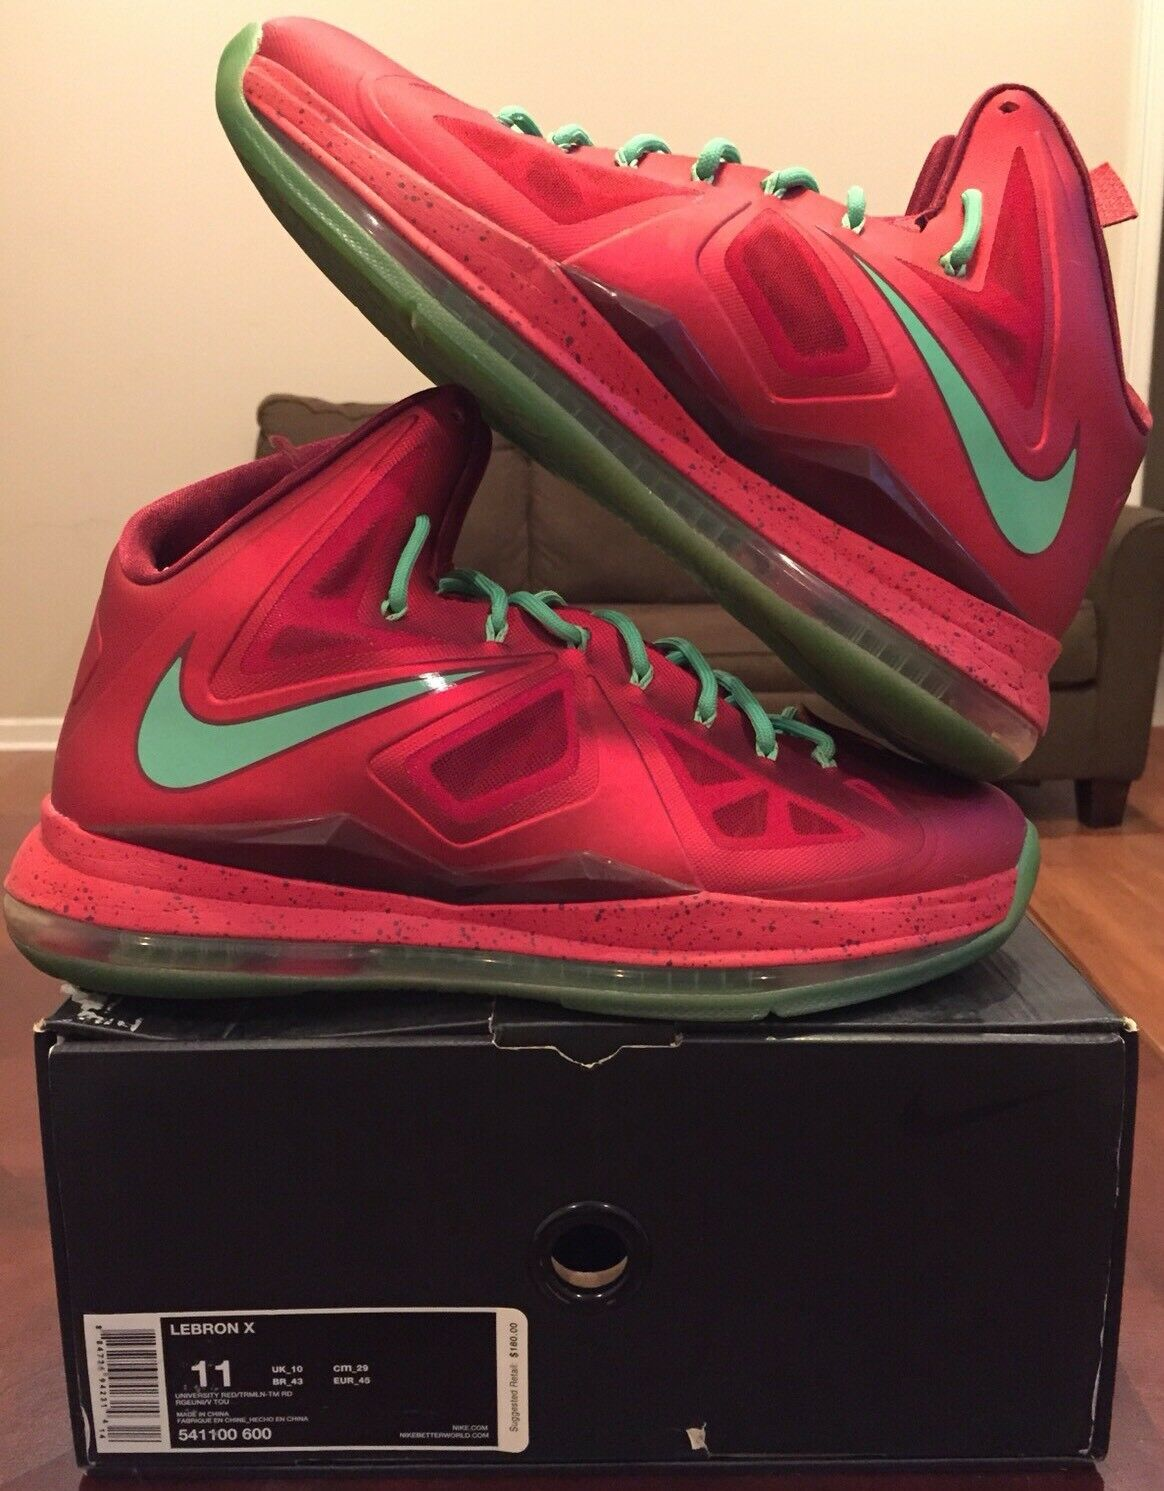 Nike Lebron 10 X XMAS Christmas Red Green 11 Diamond Jordan 1 2 3 4 Lot The latest discount shoes for men and women